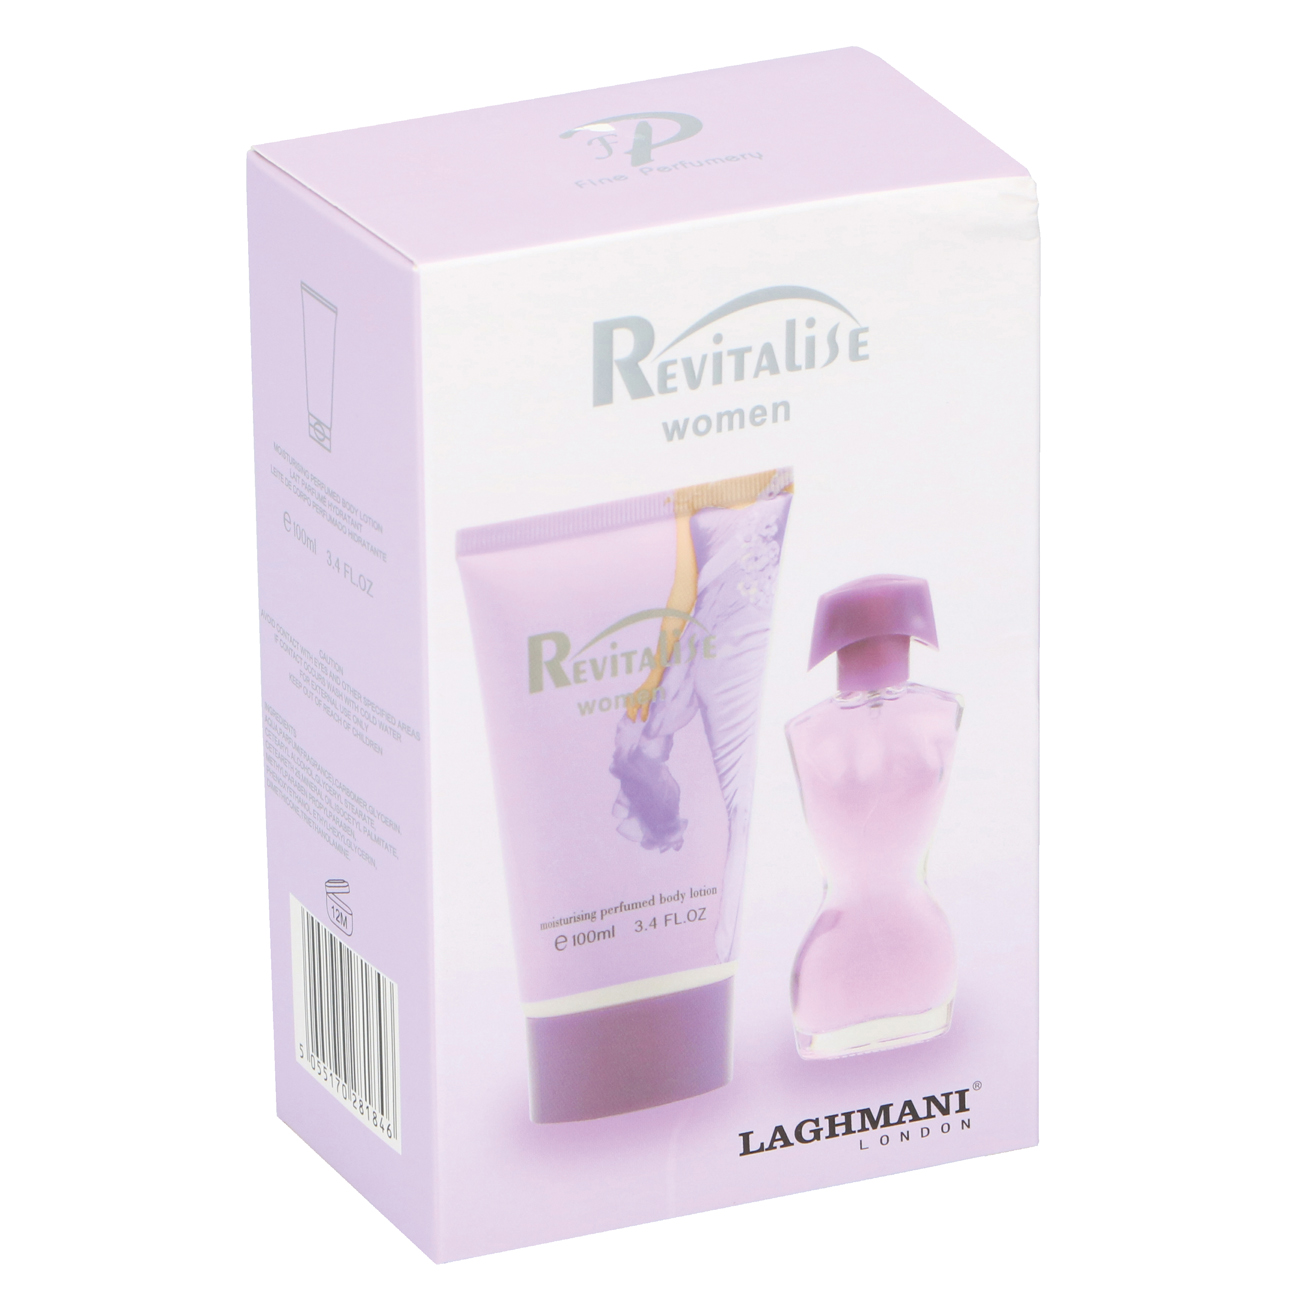 Parfum giftset 2pcs Revitalise